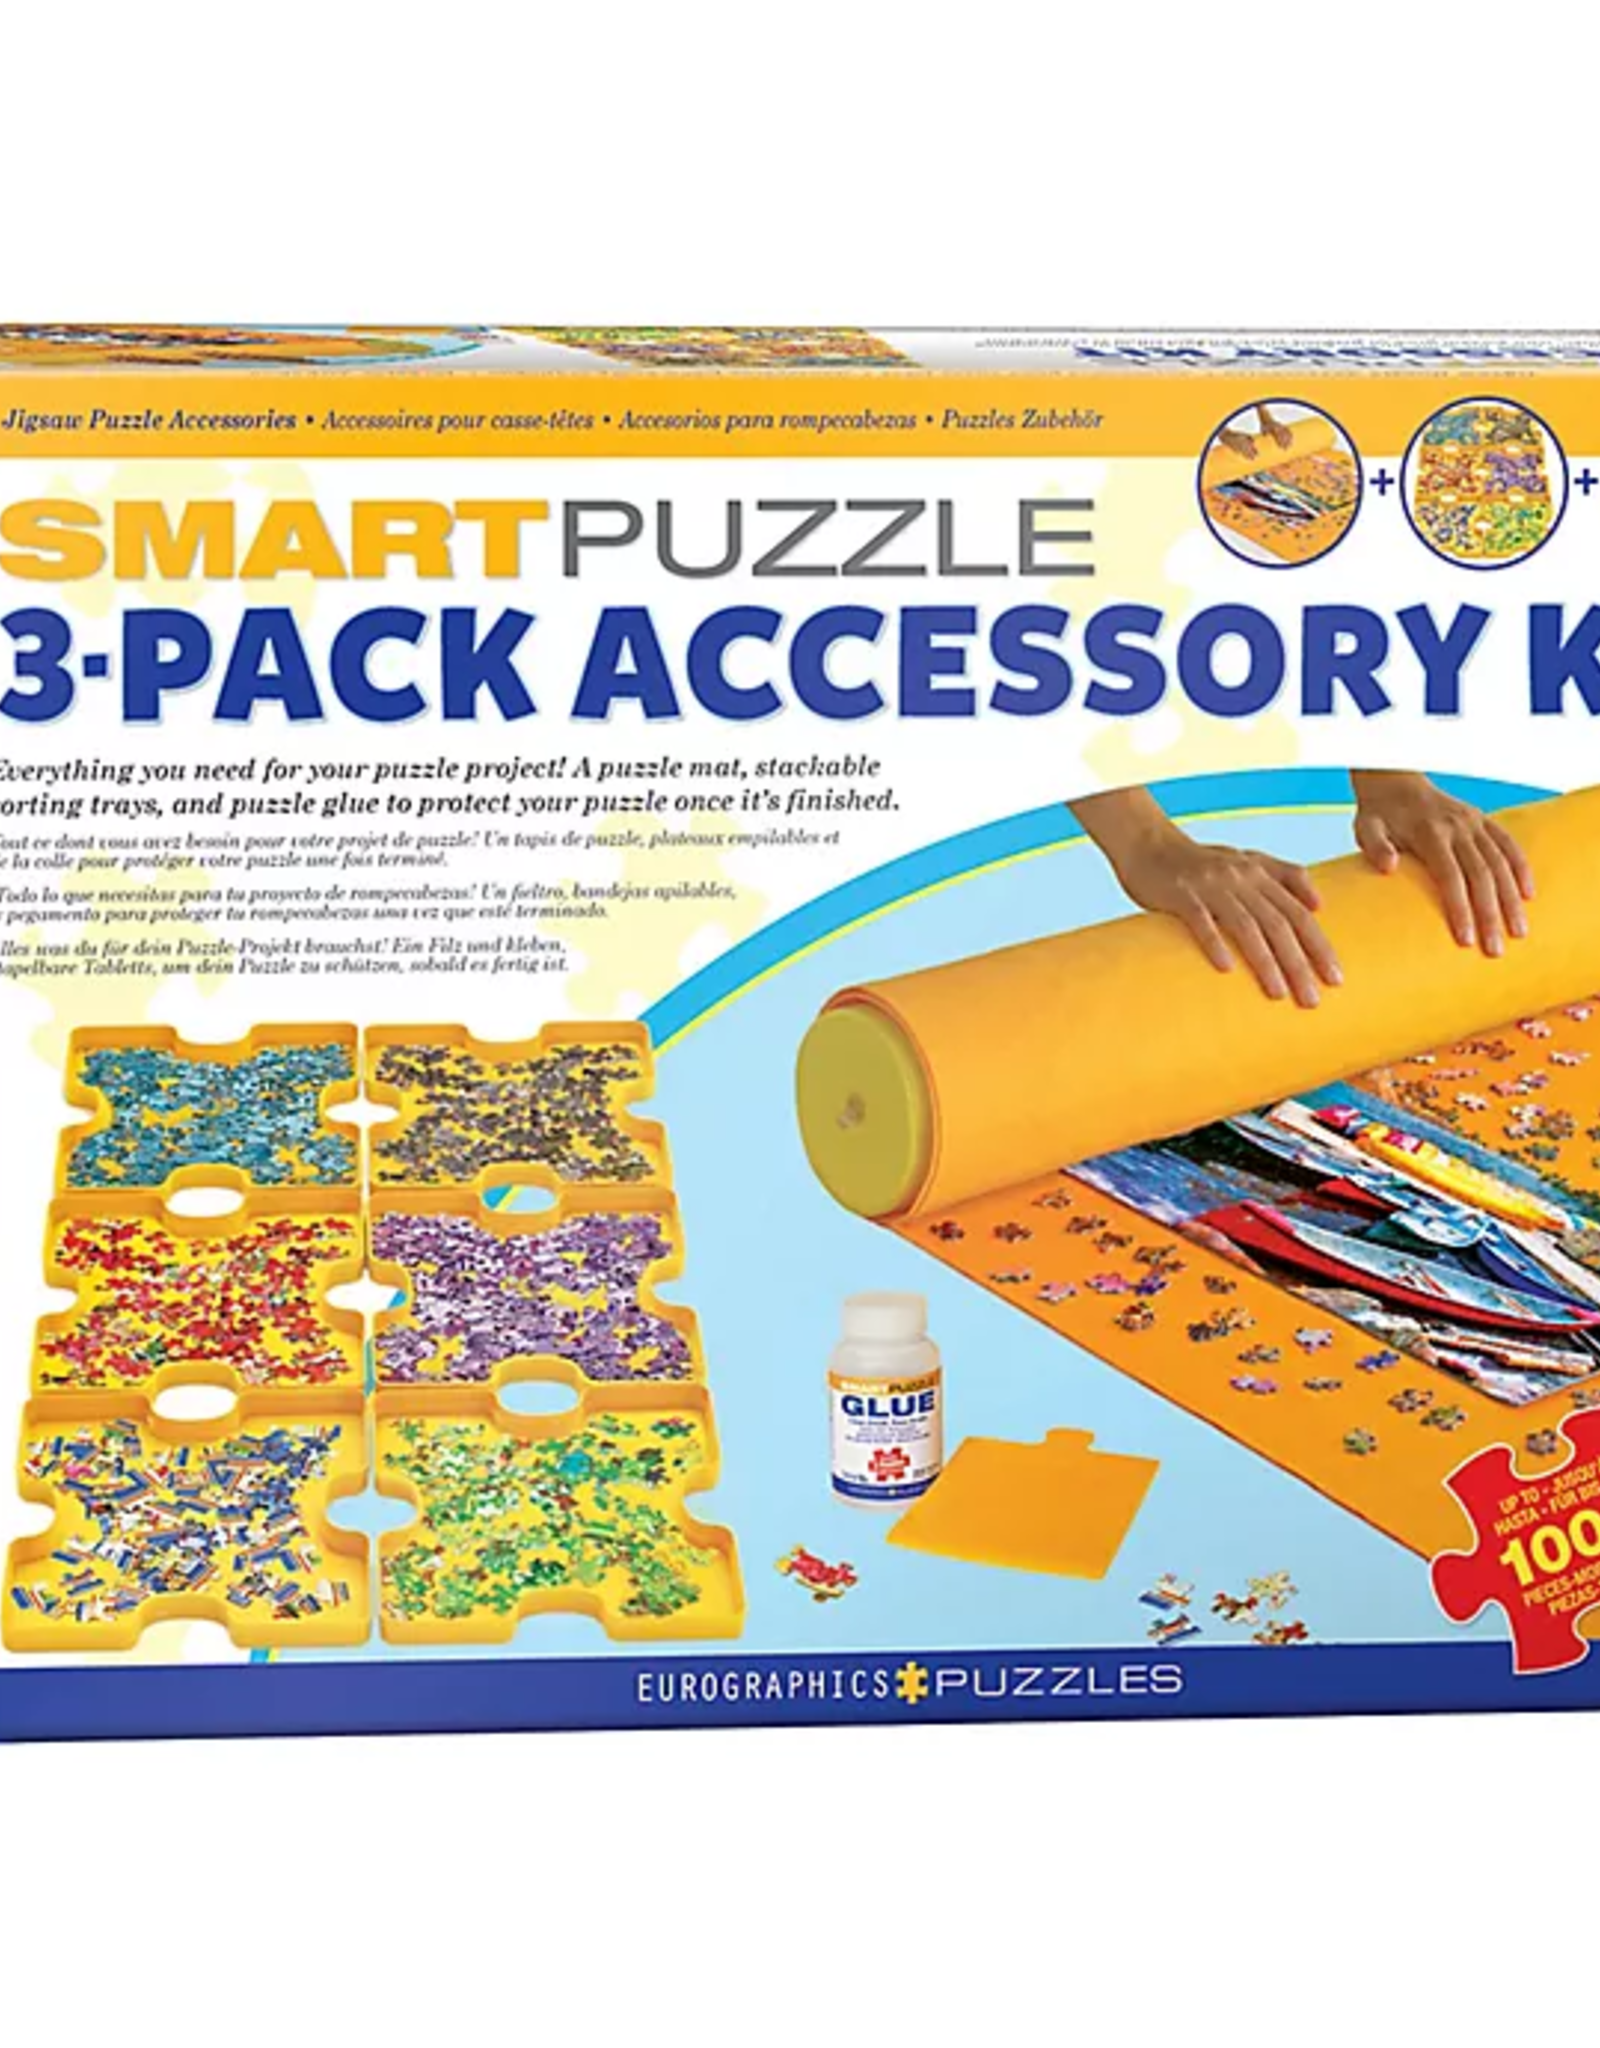 Eurographics Smart Puzzle Accessory Kit